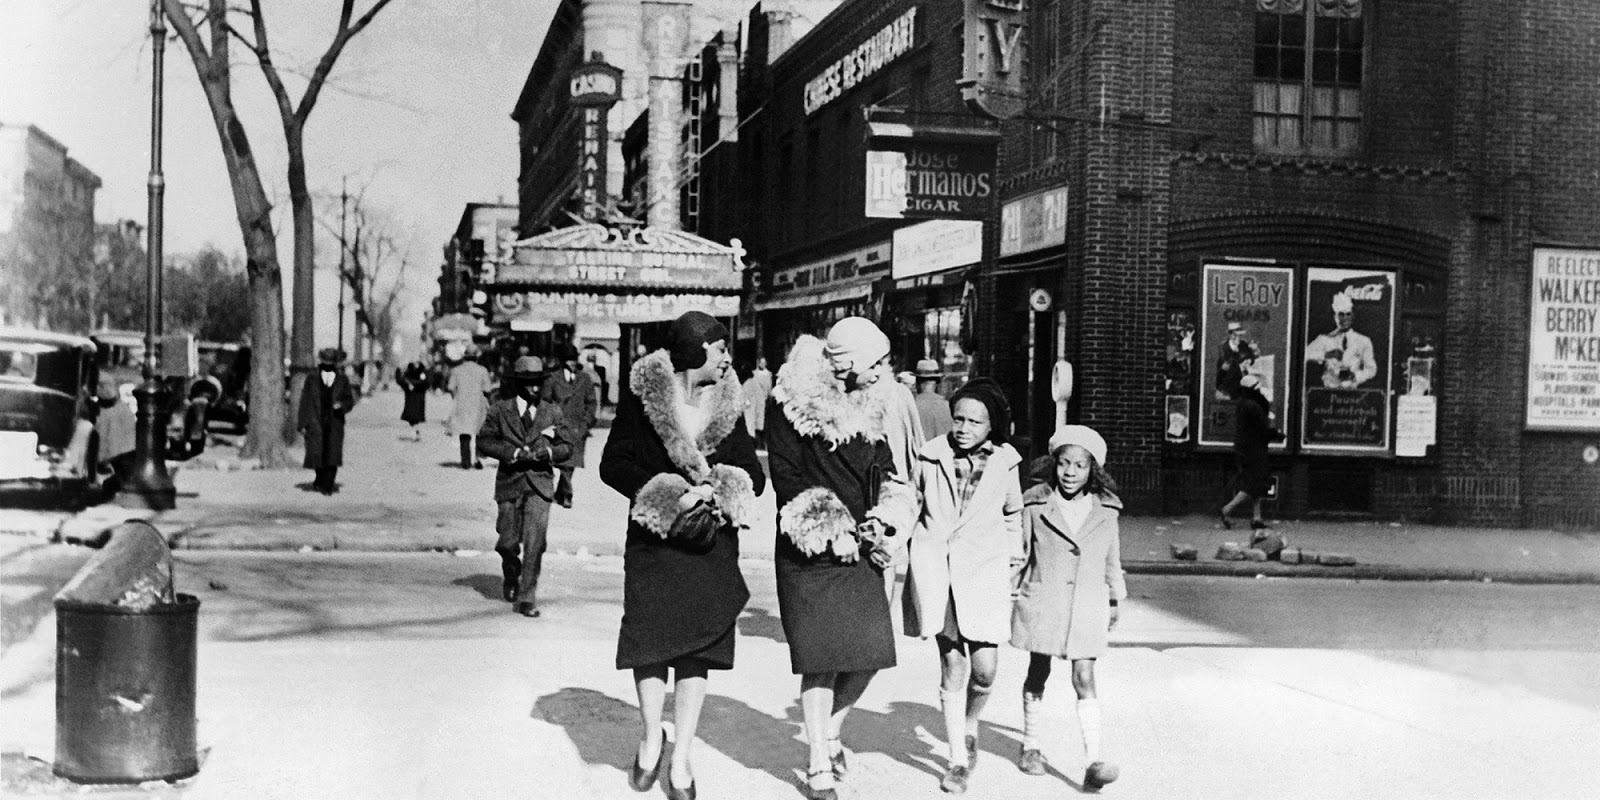 For our feature today, I found this wonderful photograph of ladies in  Harlem in 1933. I just love their fashion, as well as the fashion on the  children.